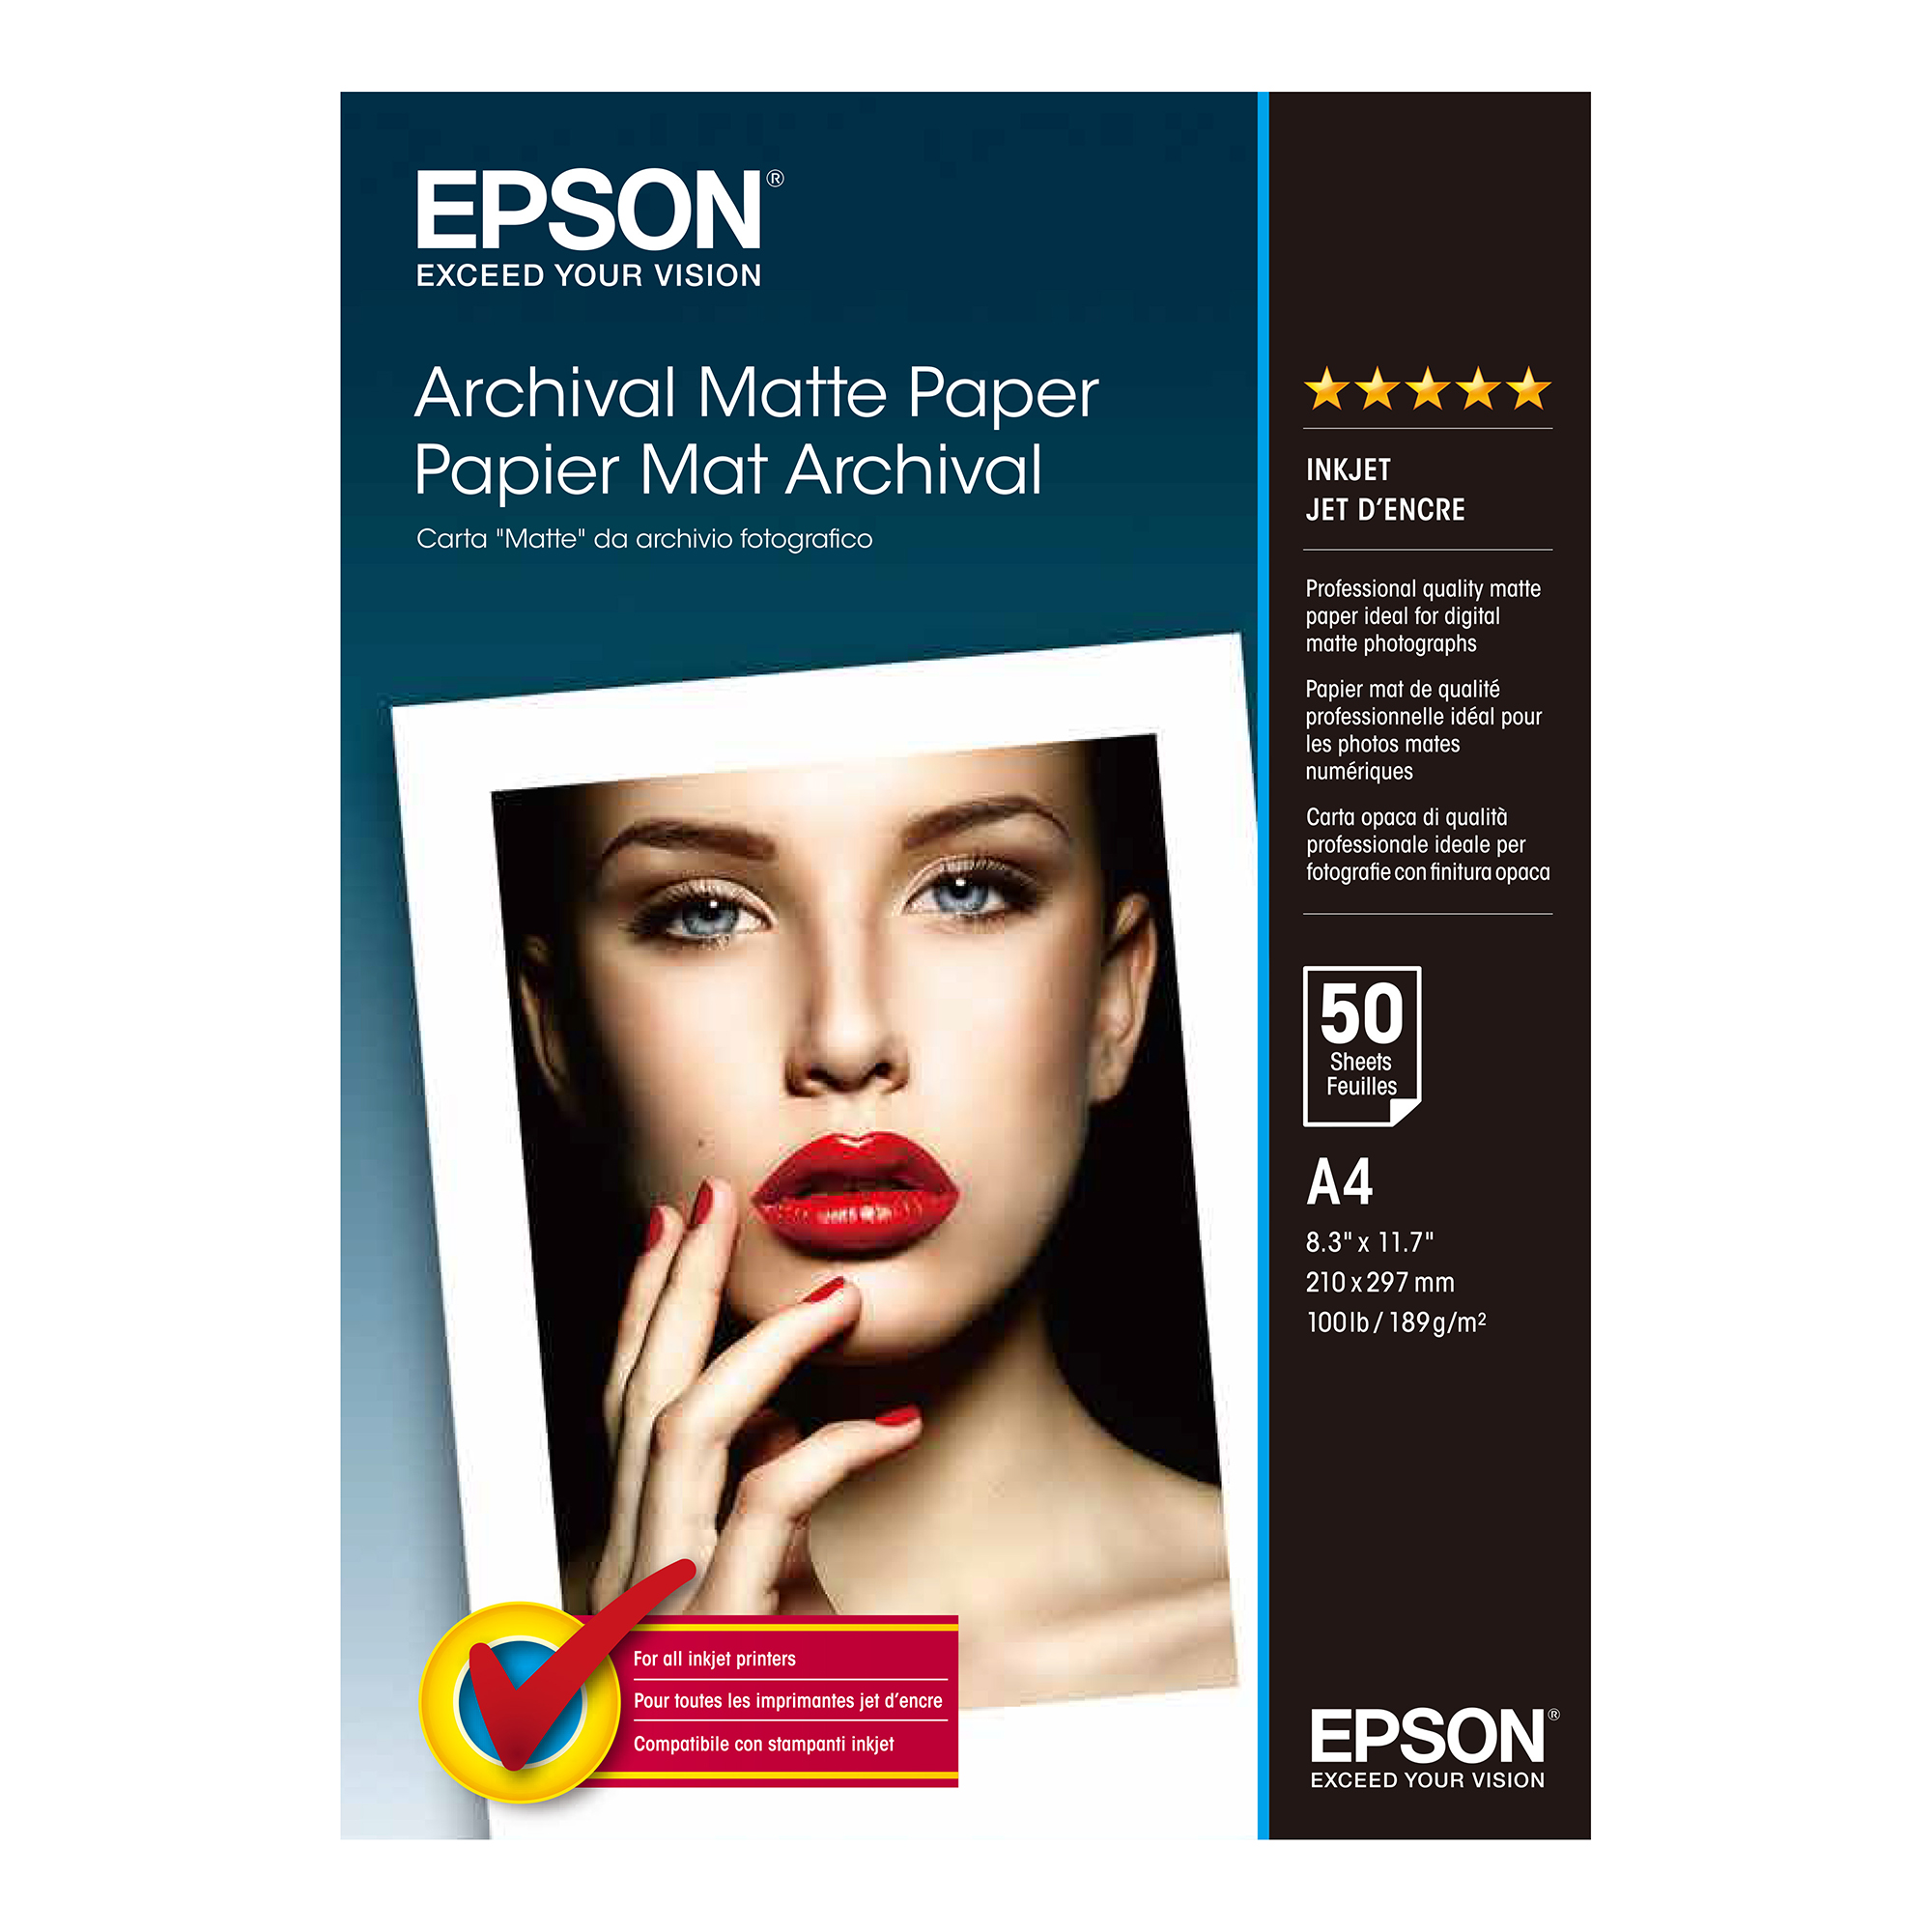 A4 Epson A4 Archival Matte Paper 50 Sheets 192gsm White Ref C13S041342 *3 to 5 Day Leadtime*